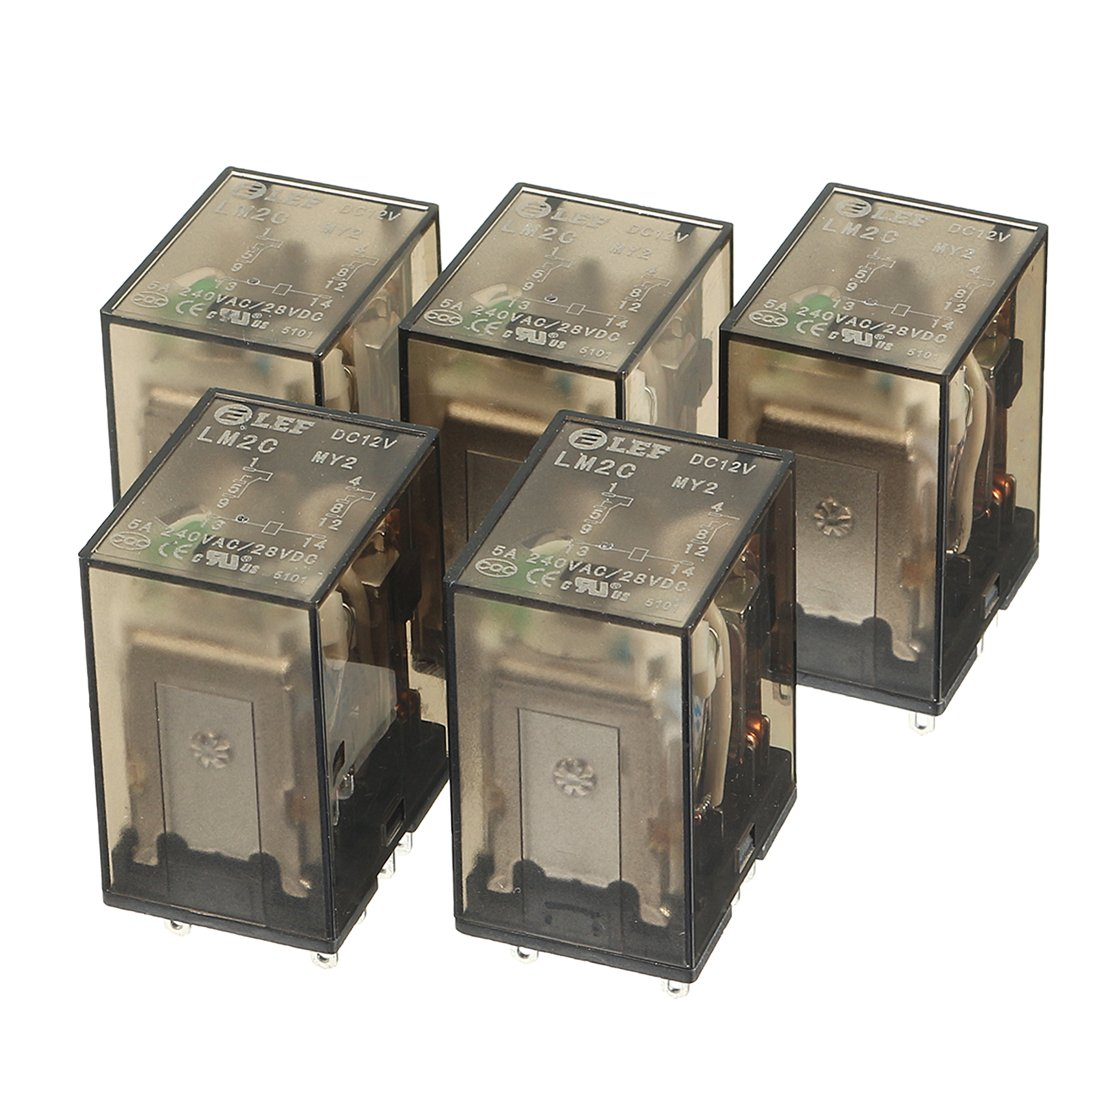 uxcell 5Pcs DC 12V Coil 5A 240VAC 28VDC DPDT 2NO+2NC 8Pin Power Electromagnetic Relay with Indicator Light